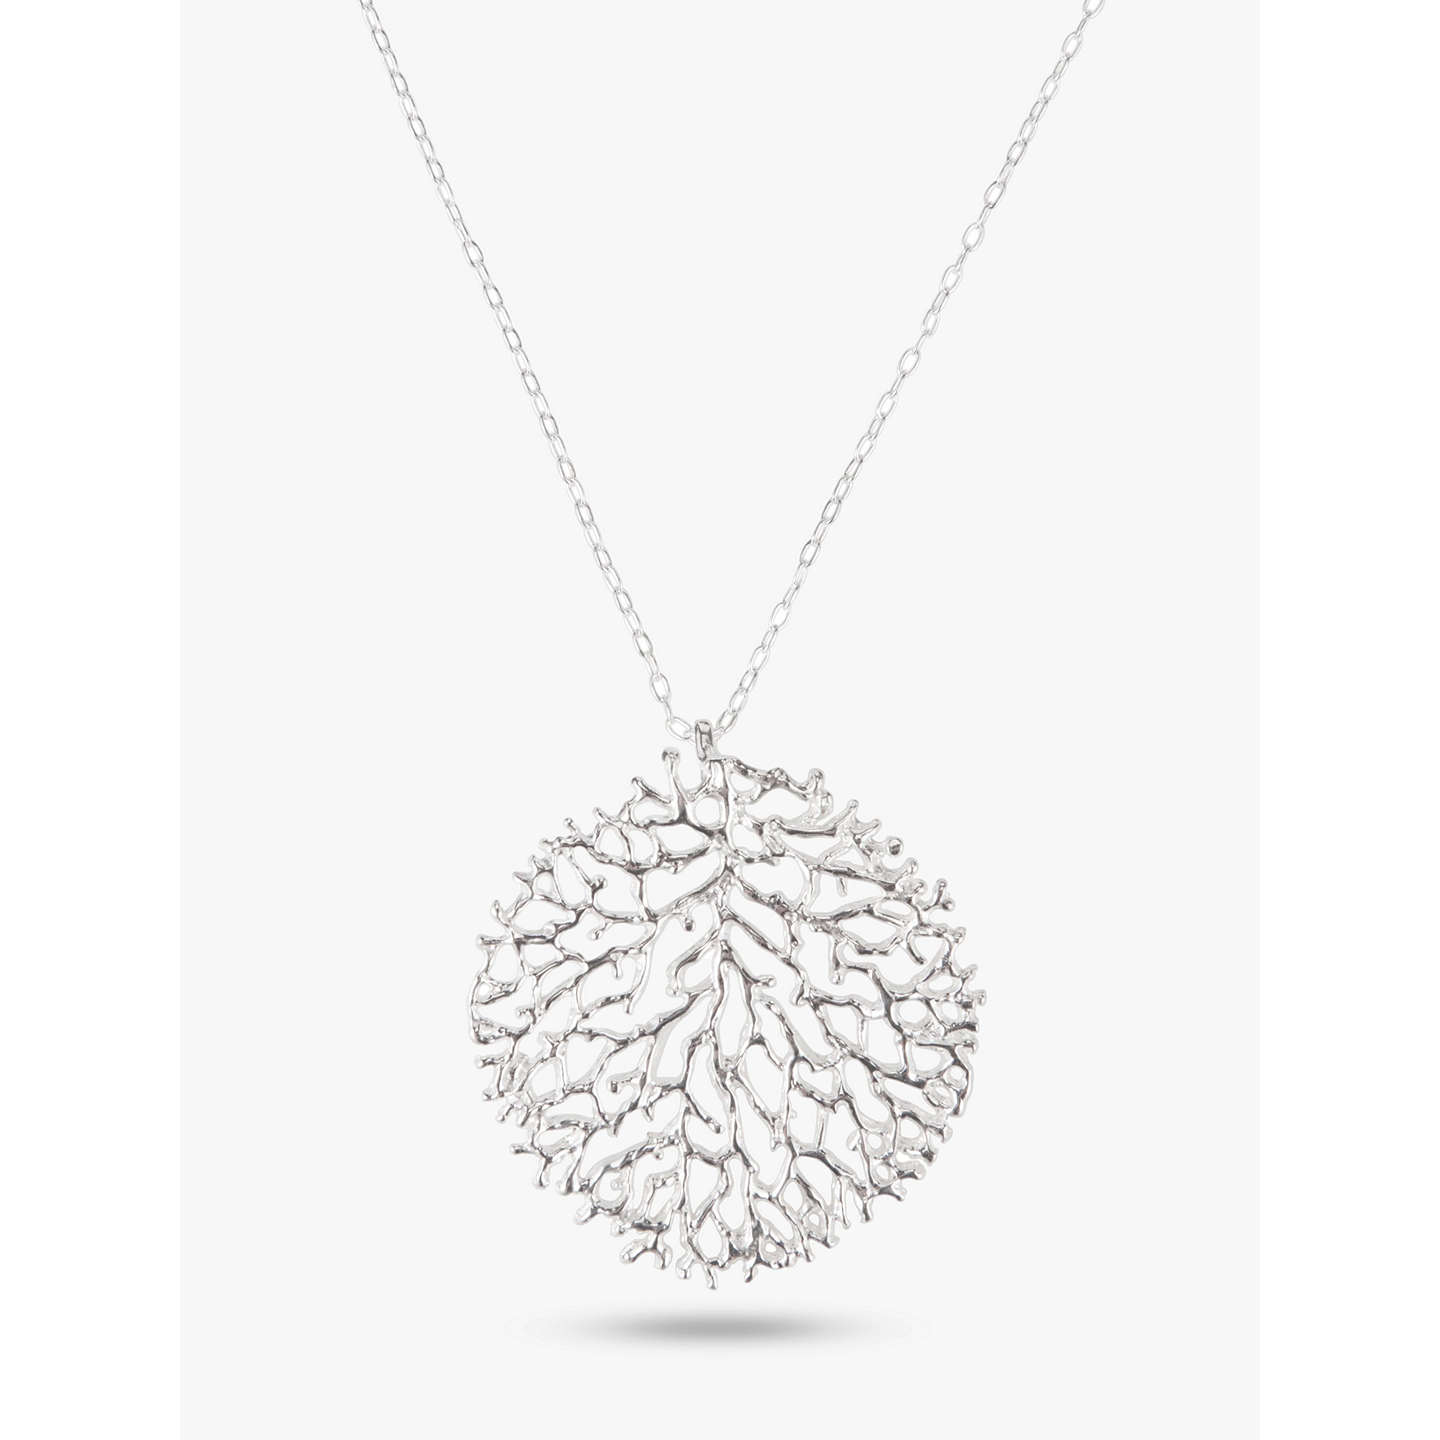 Nina b large filigree pendant necklace silver at john lewis buynina b large filigree pendant necklace silver online at johnlewis aloadofball Image collections